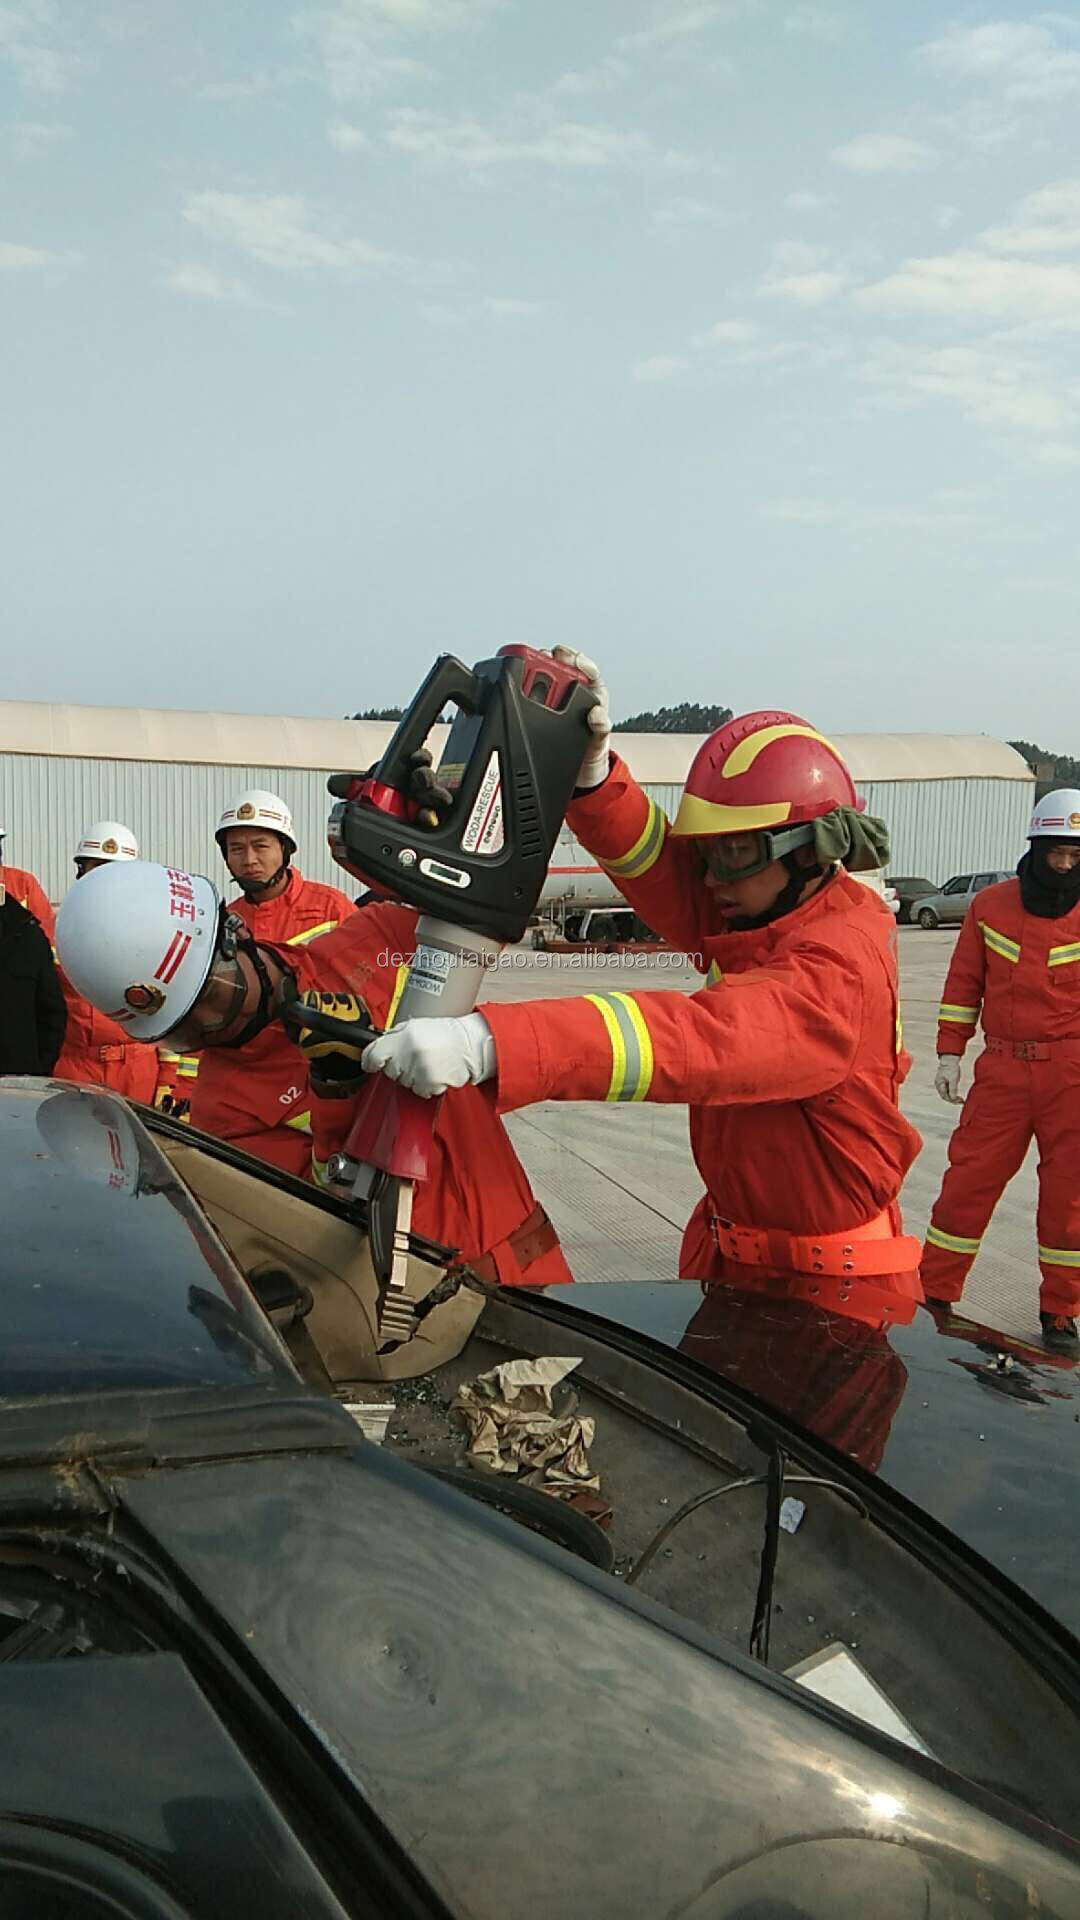 Manual sling, rescue equipment and hydraulic safety equipment